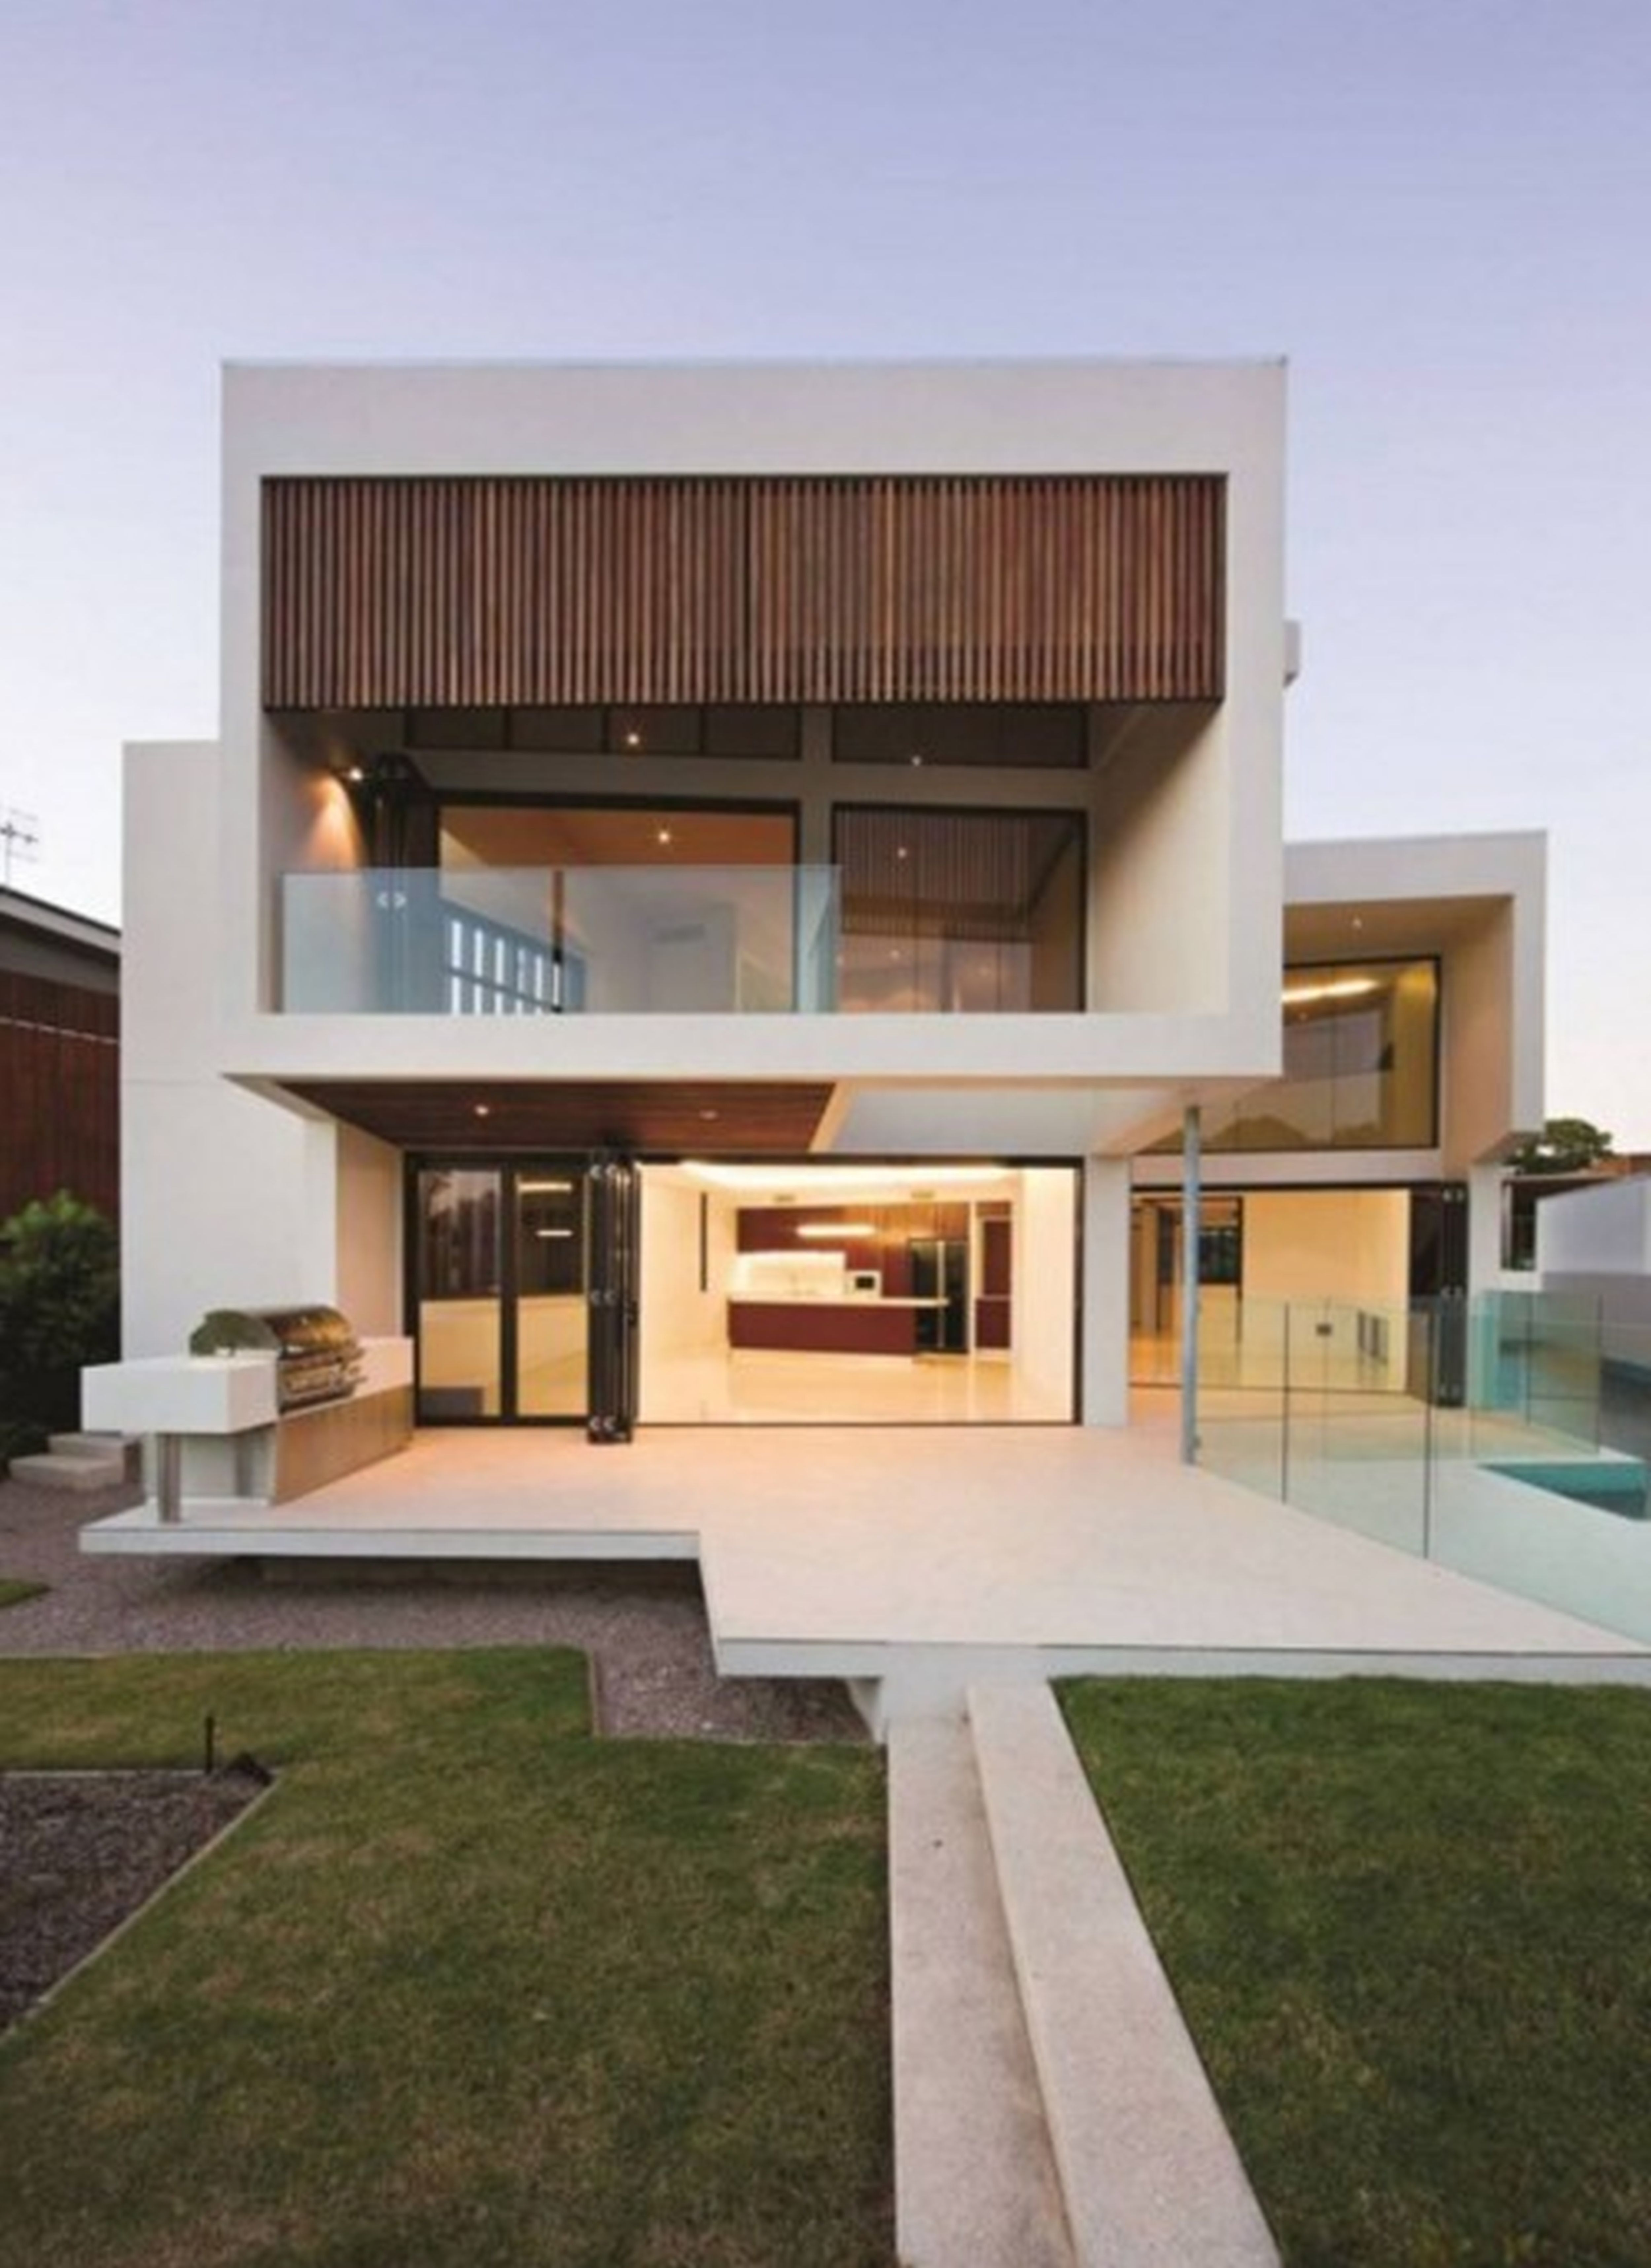 House Plans Inside and Outside Lovely Architectures Exterior Design Amazing Modern House Designs